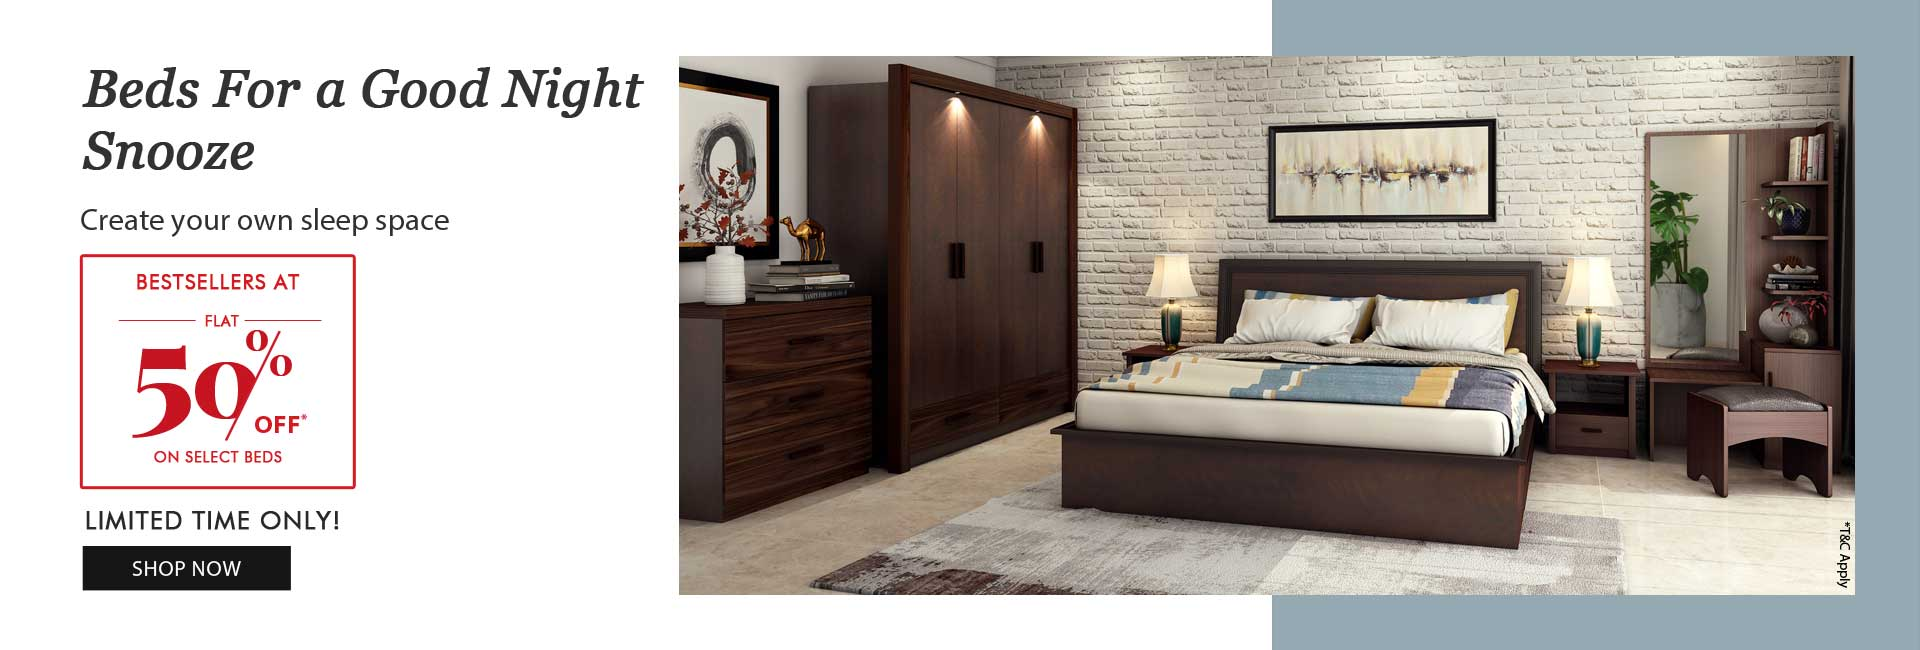 Flat 50% off on select Beds